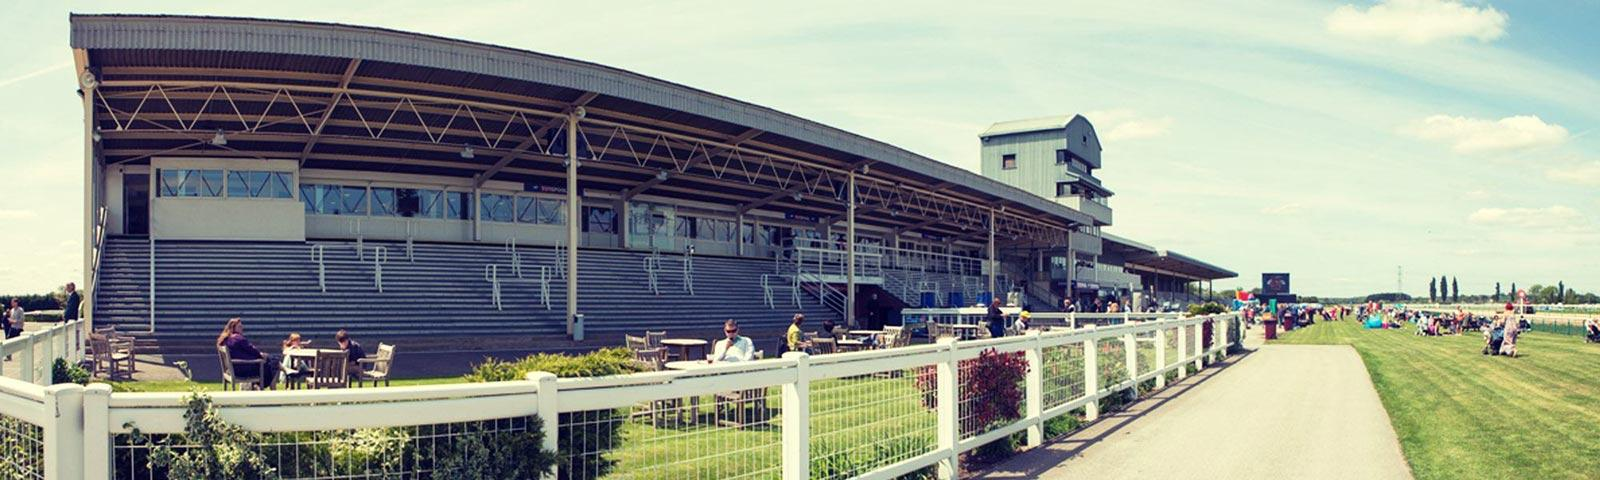 A sunny day at Southwell Racecourse